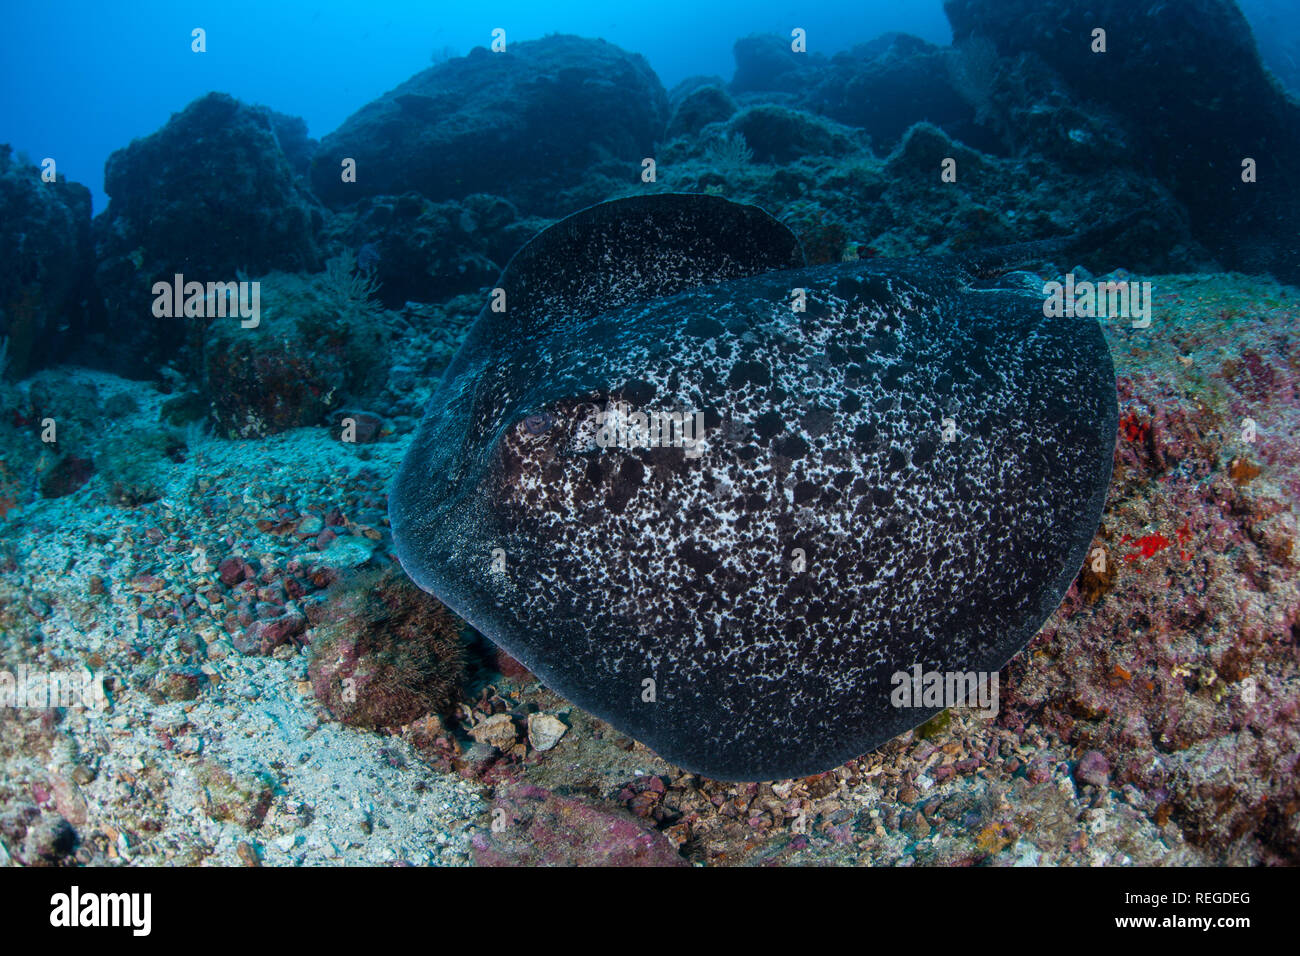 A Marbled stingray, Taeniura meyeni, swims over the rocky  seafloor at Cocos Island, Costa Rica. This remote island is known for its marine life. Stock Photo